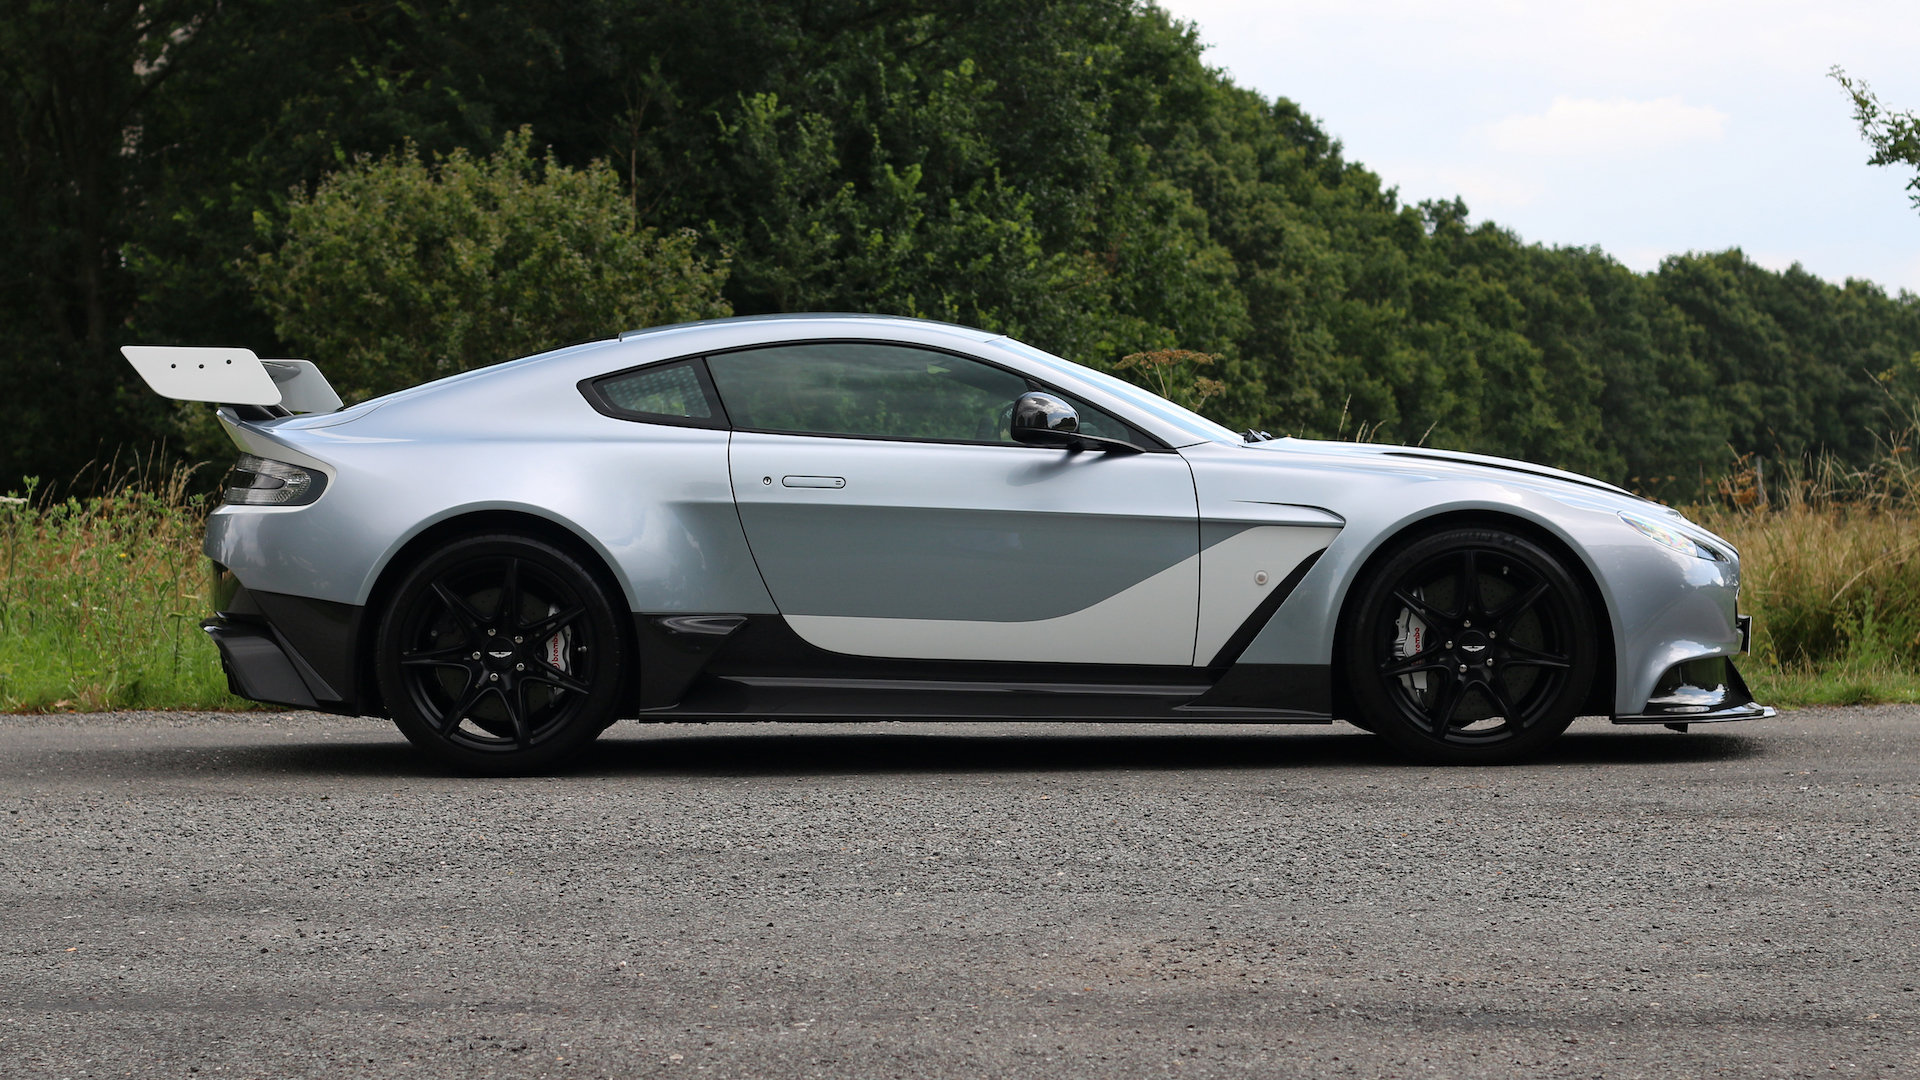 2015 Aston Martin GT12 - Skyfall Silver - 1 of 100 For Sale (picture 3 of 6)